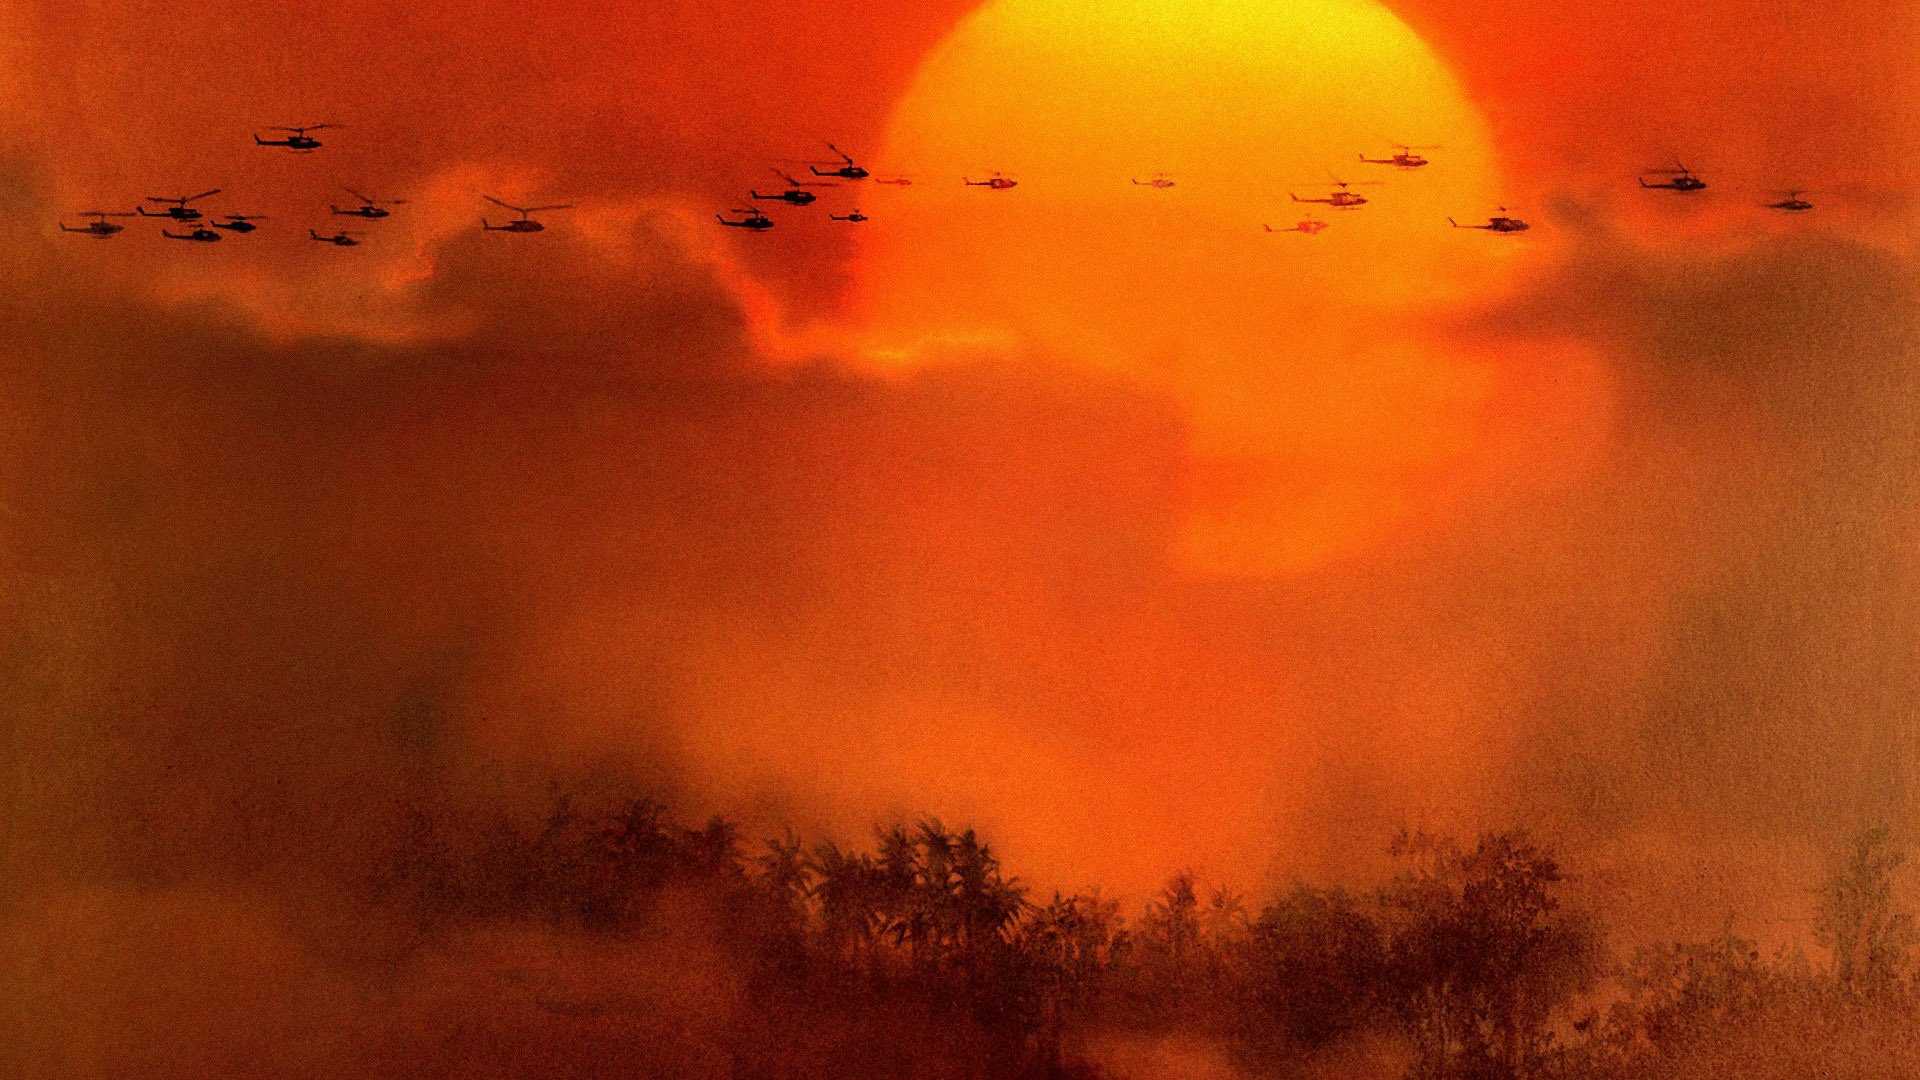 Apocalypse Now Full HD Wallpaper and Background Image ...